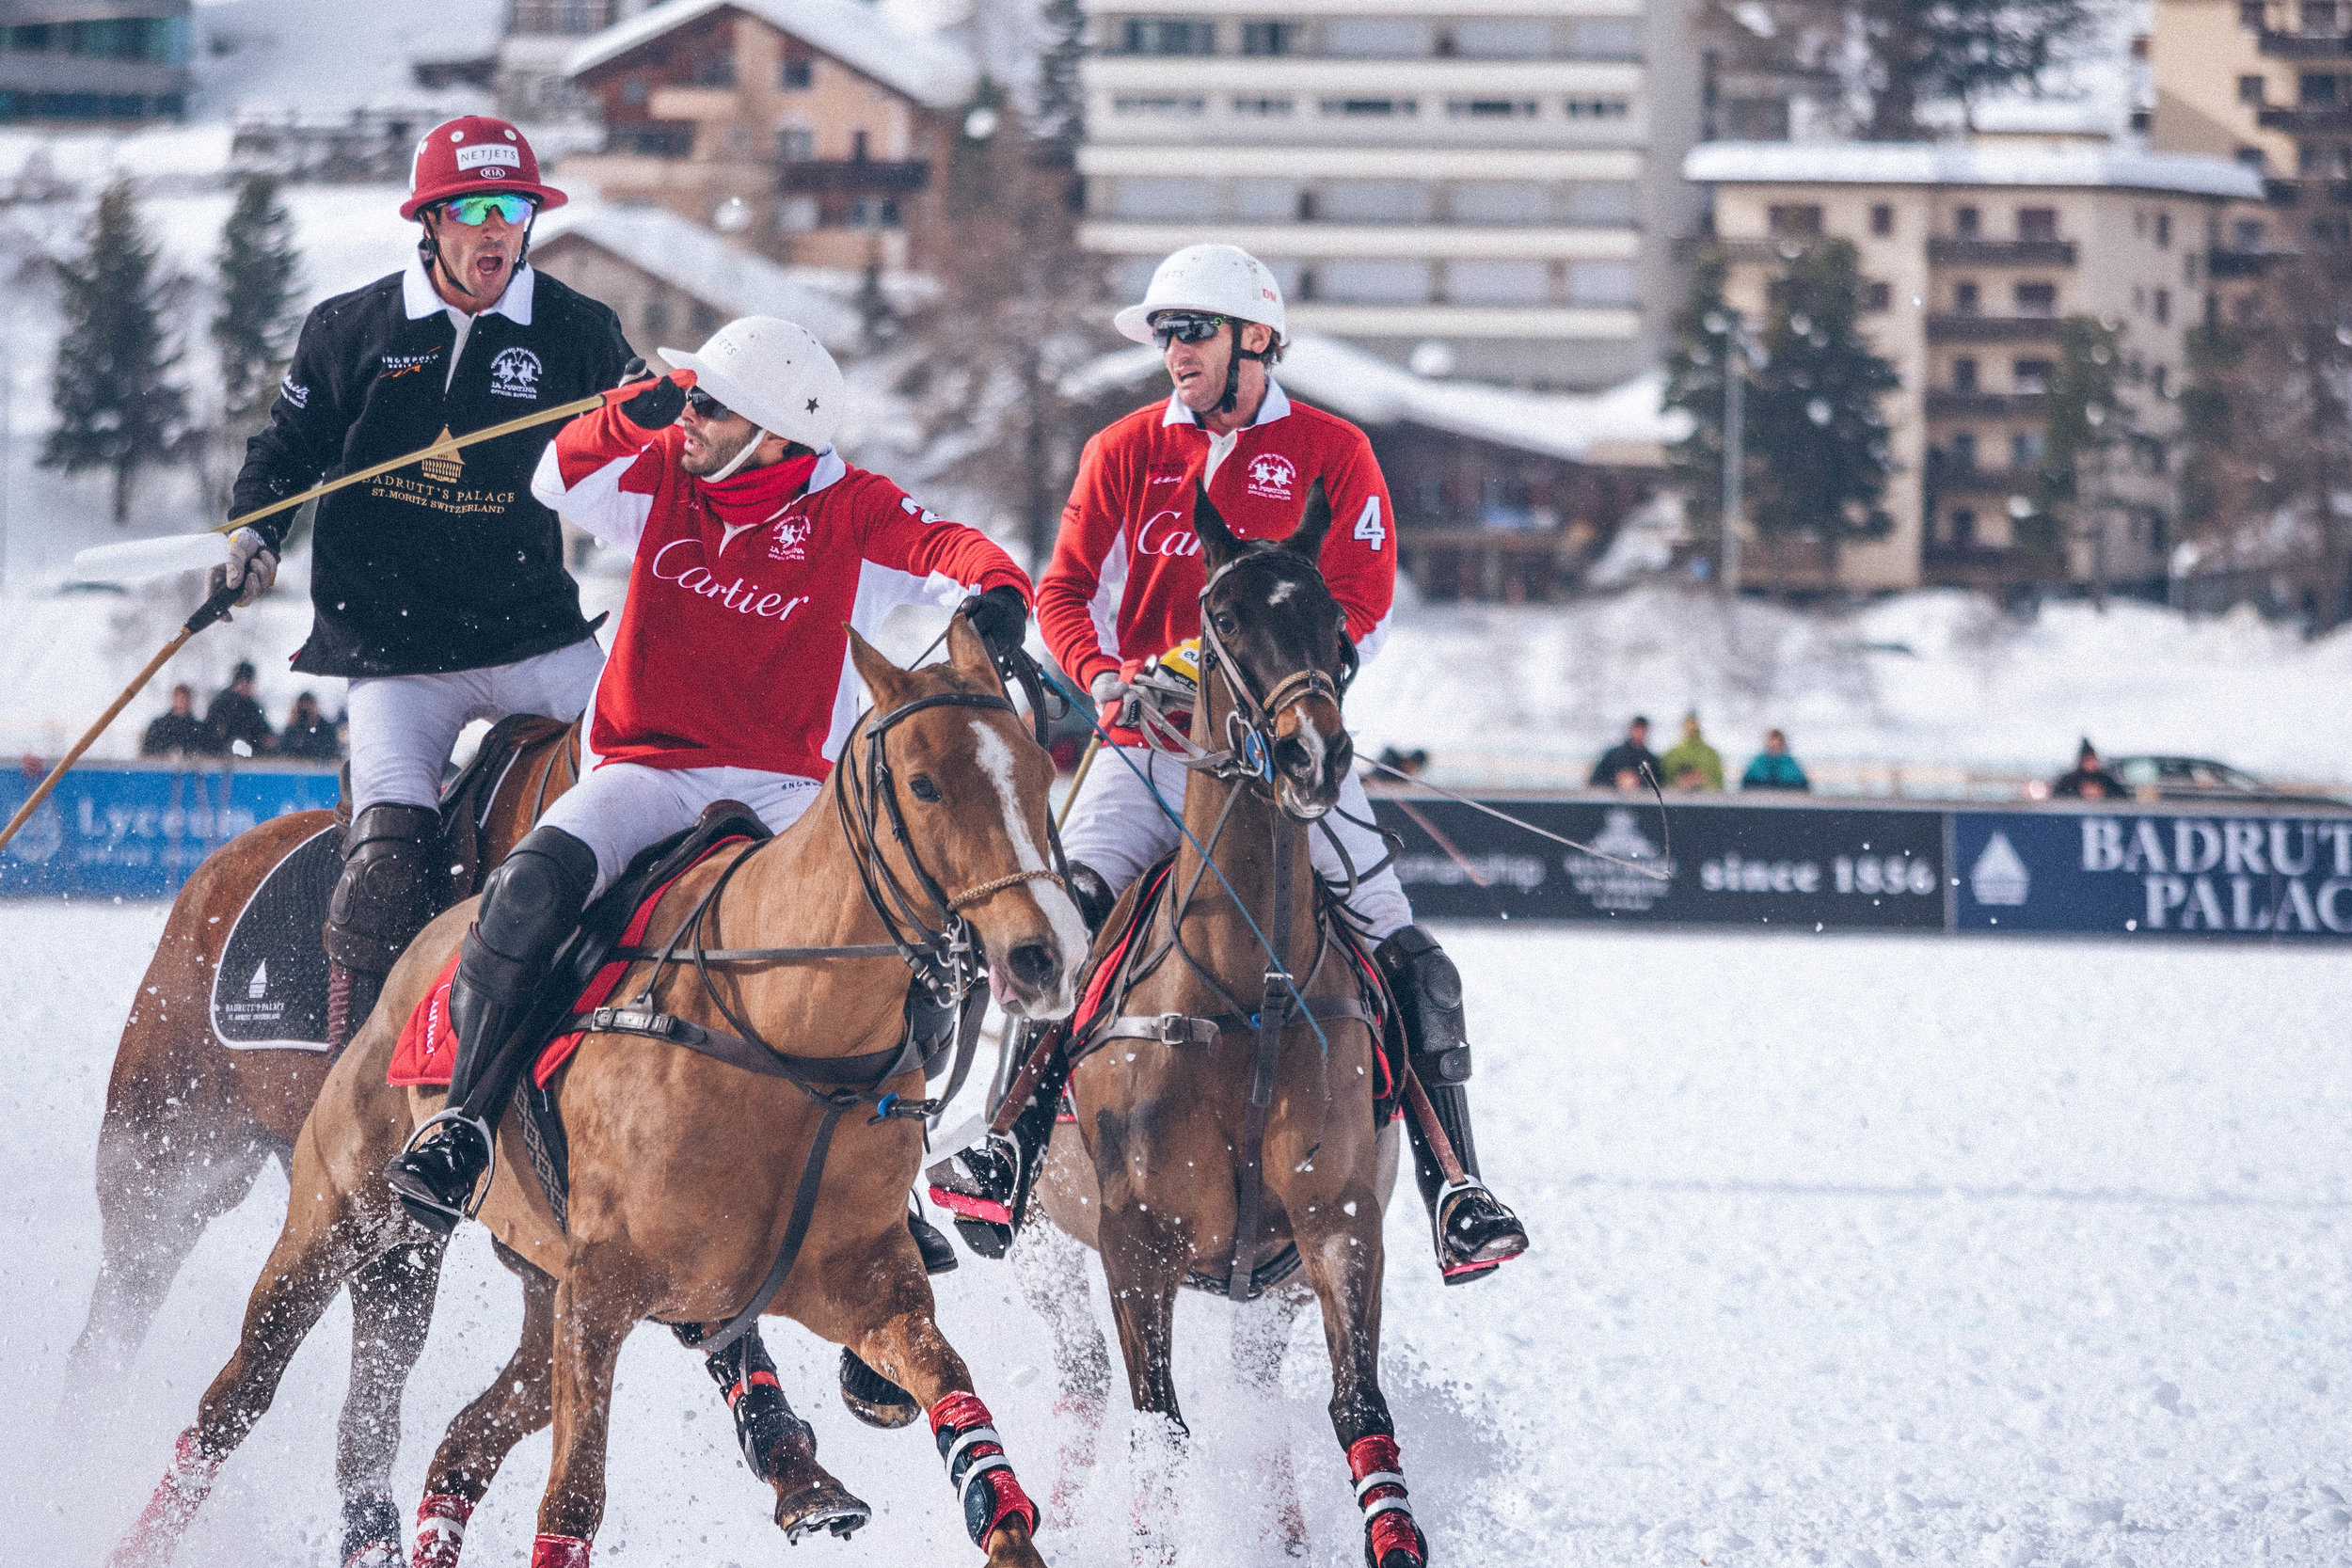 A heated moment in neighbouring St.Moritz during the Snow Polo World Cup; hosted in the last weekend of January annually.